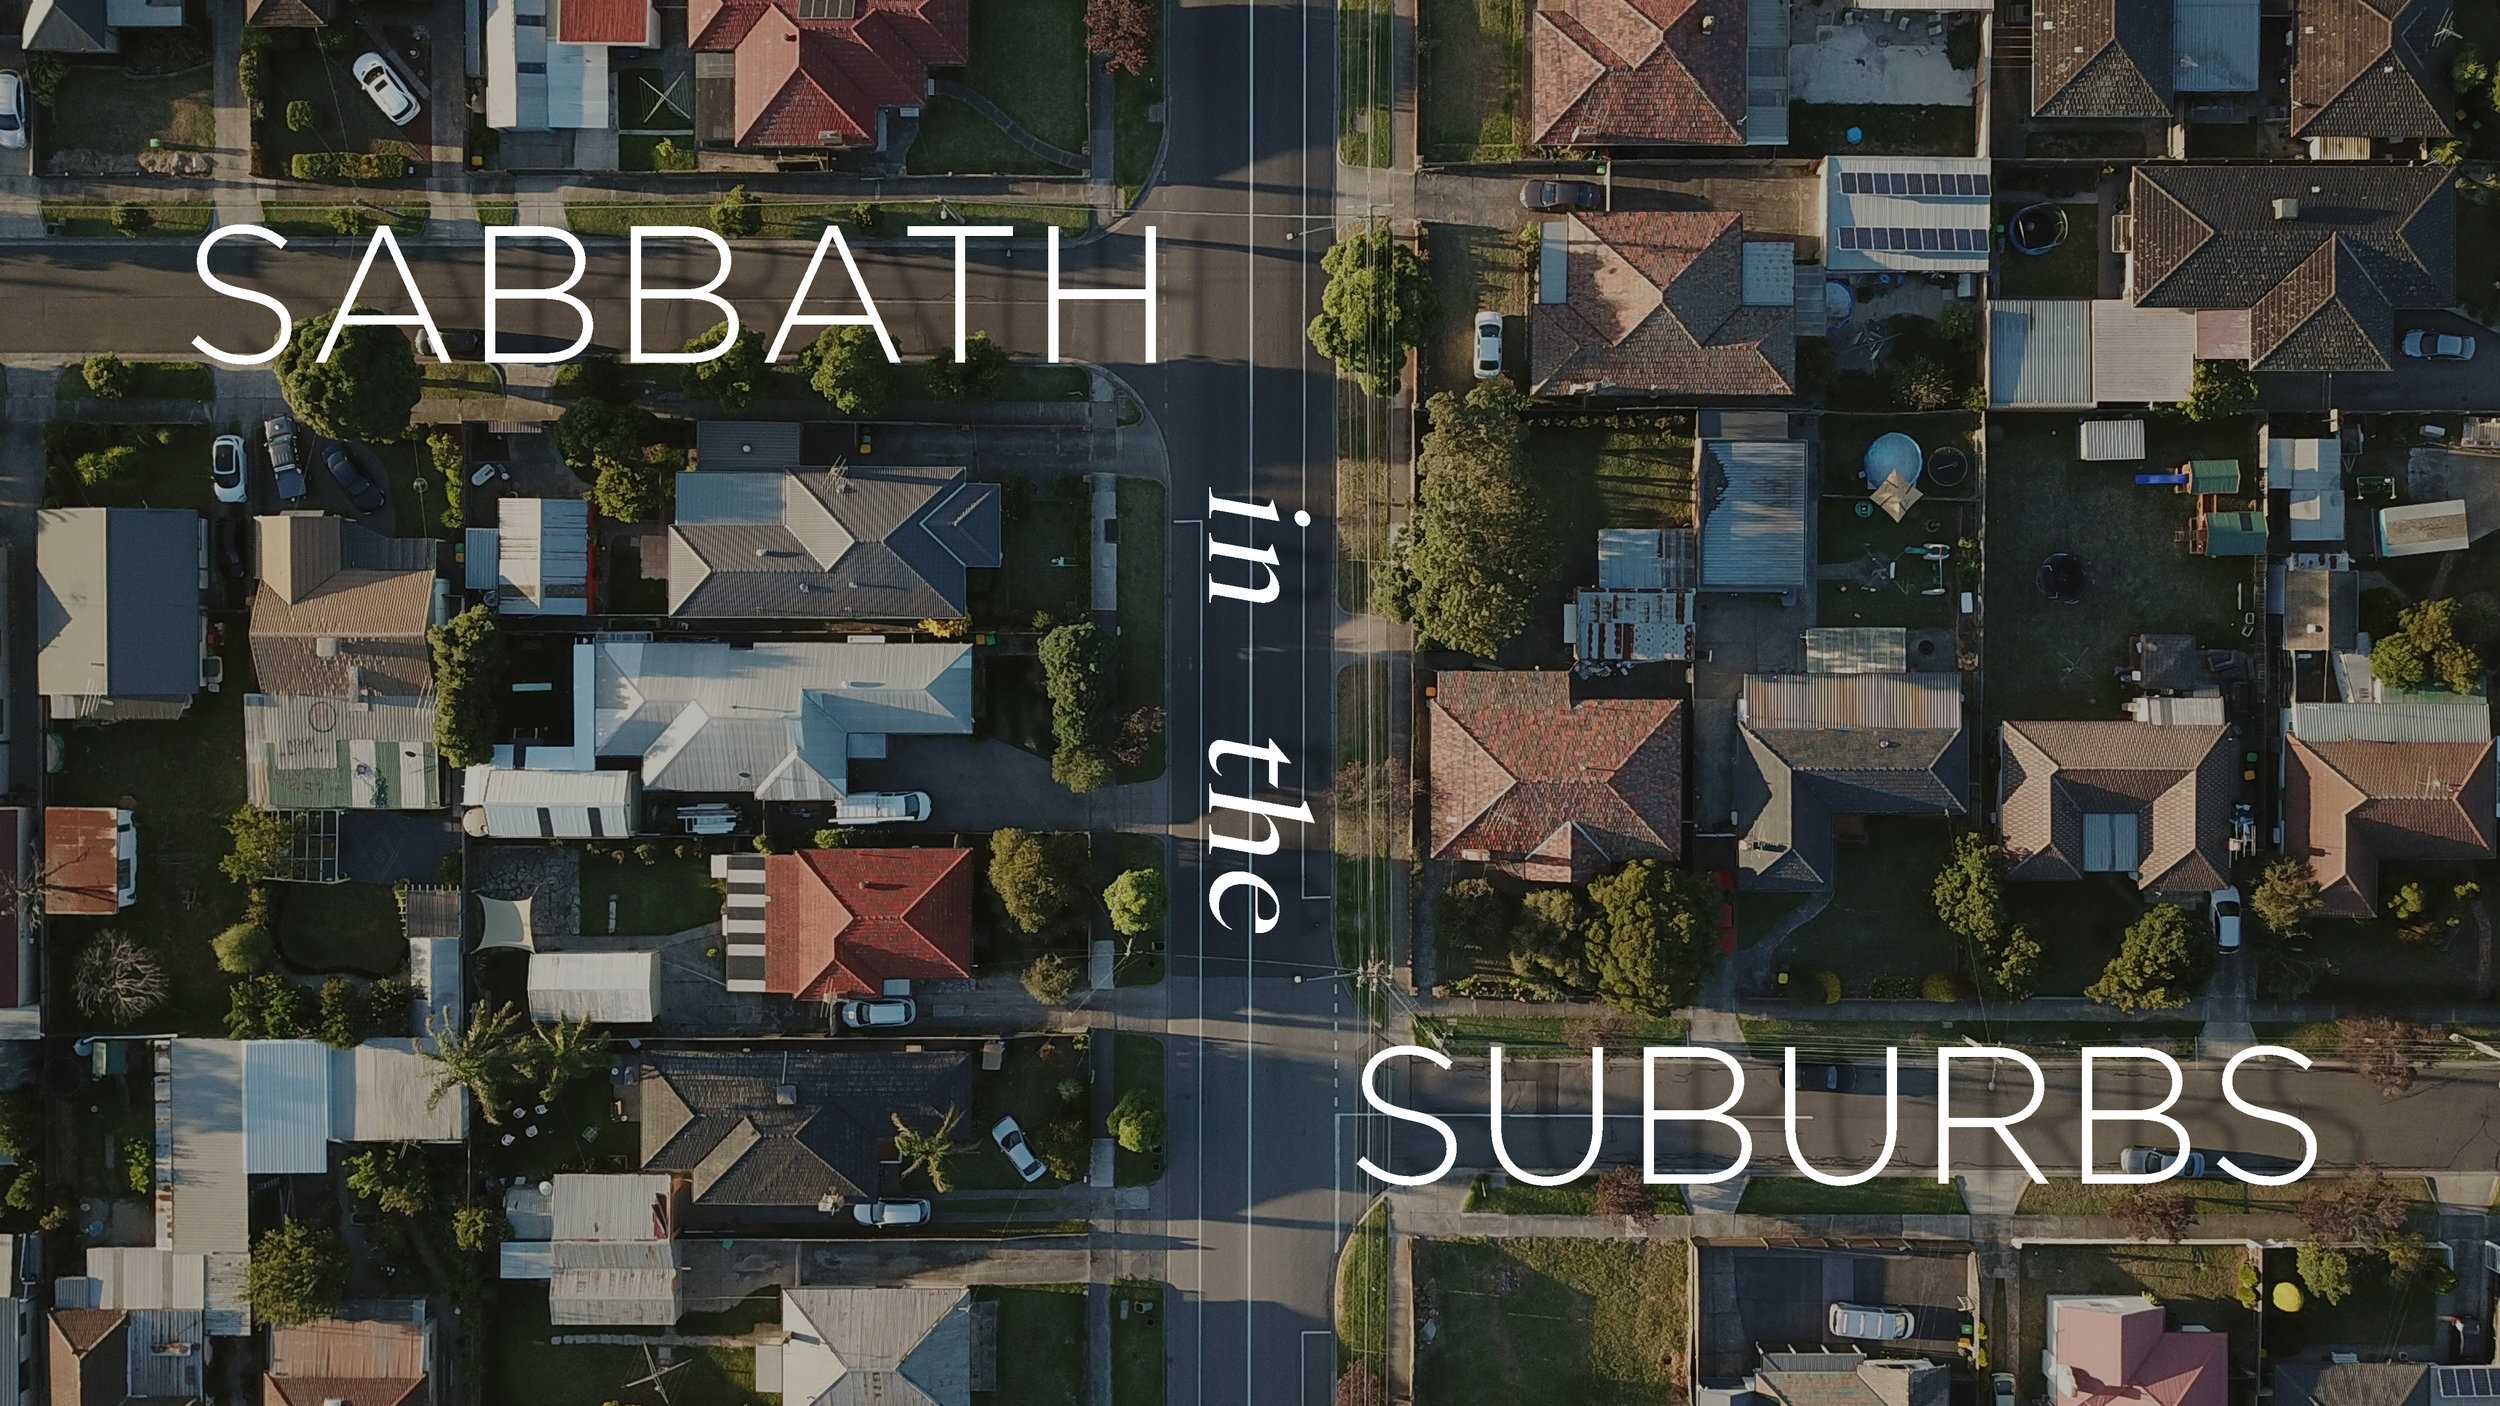 screen_art_sabbath_in_the_suburbs_2019_zoom.jpg